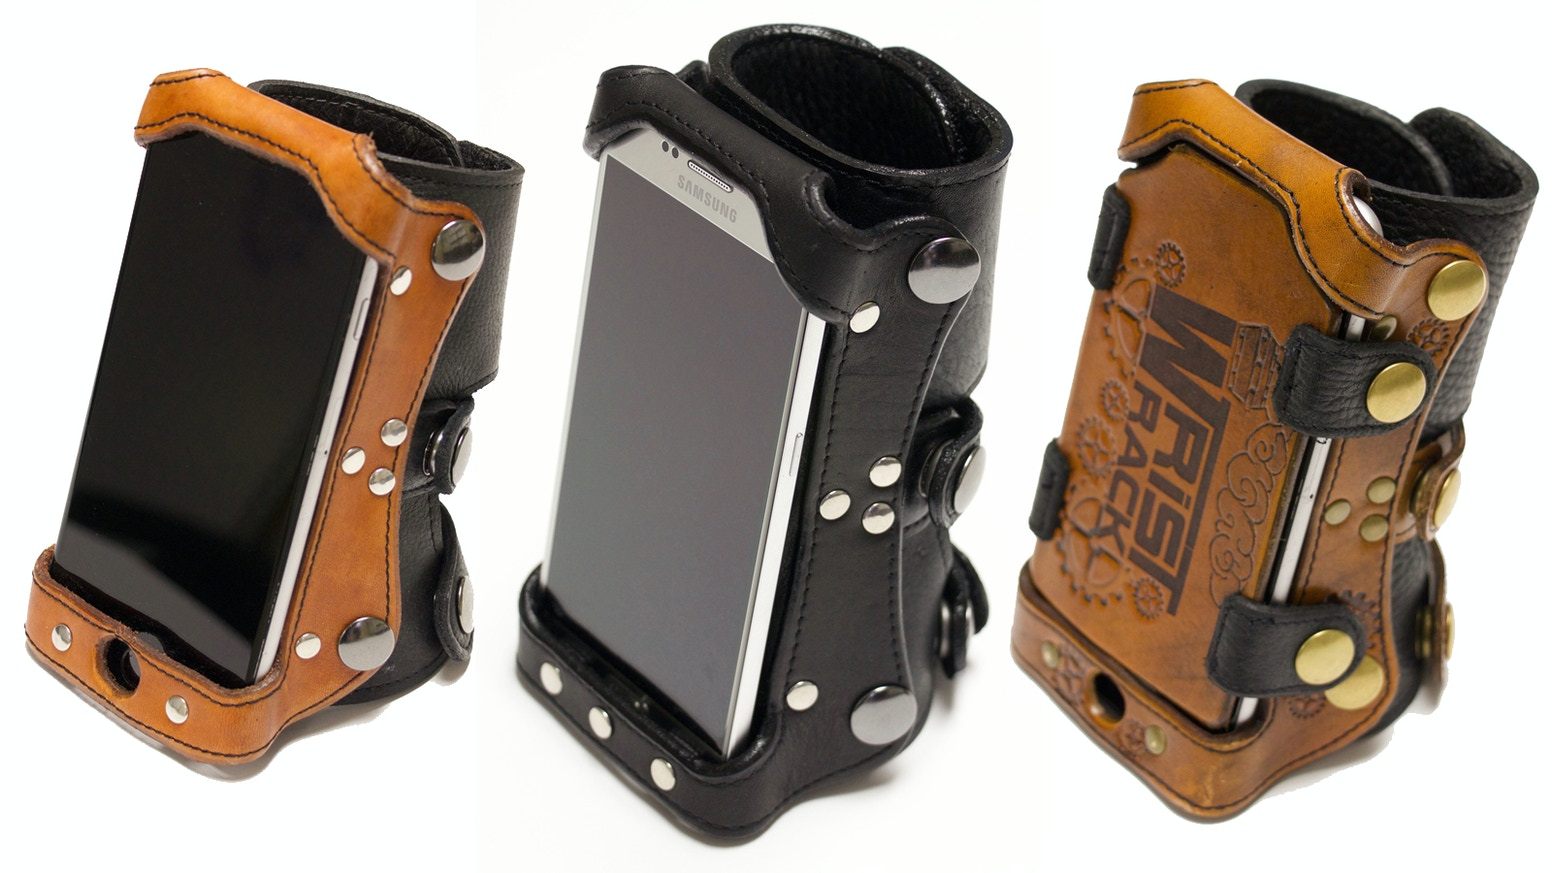 The new definition of Hands-Free. Wrist Rack lets you get on with things... at work or at play.